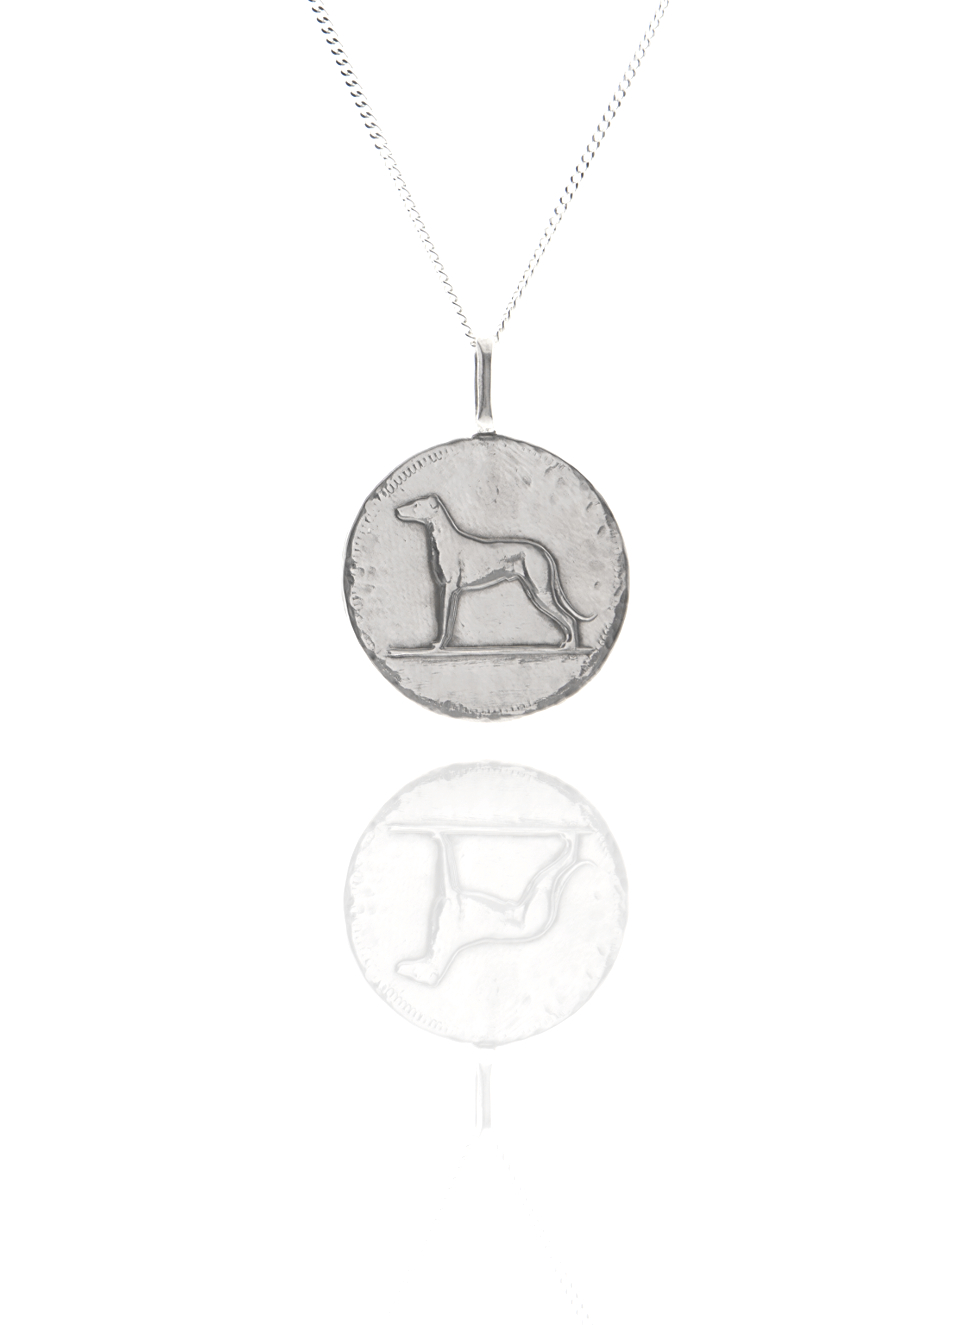 dog coin necklace